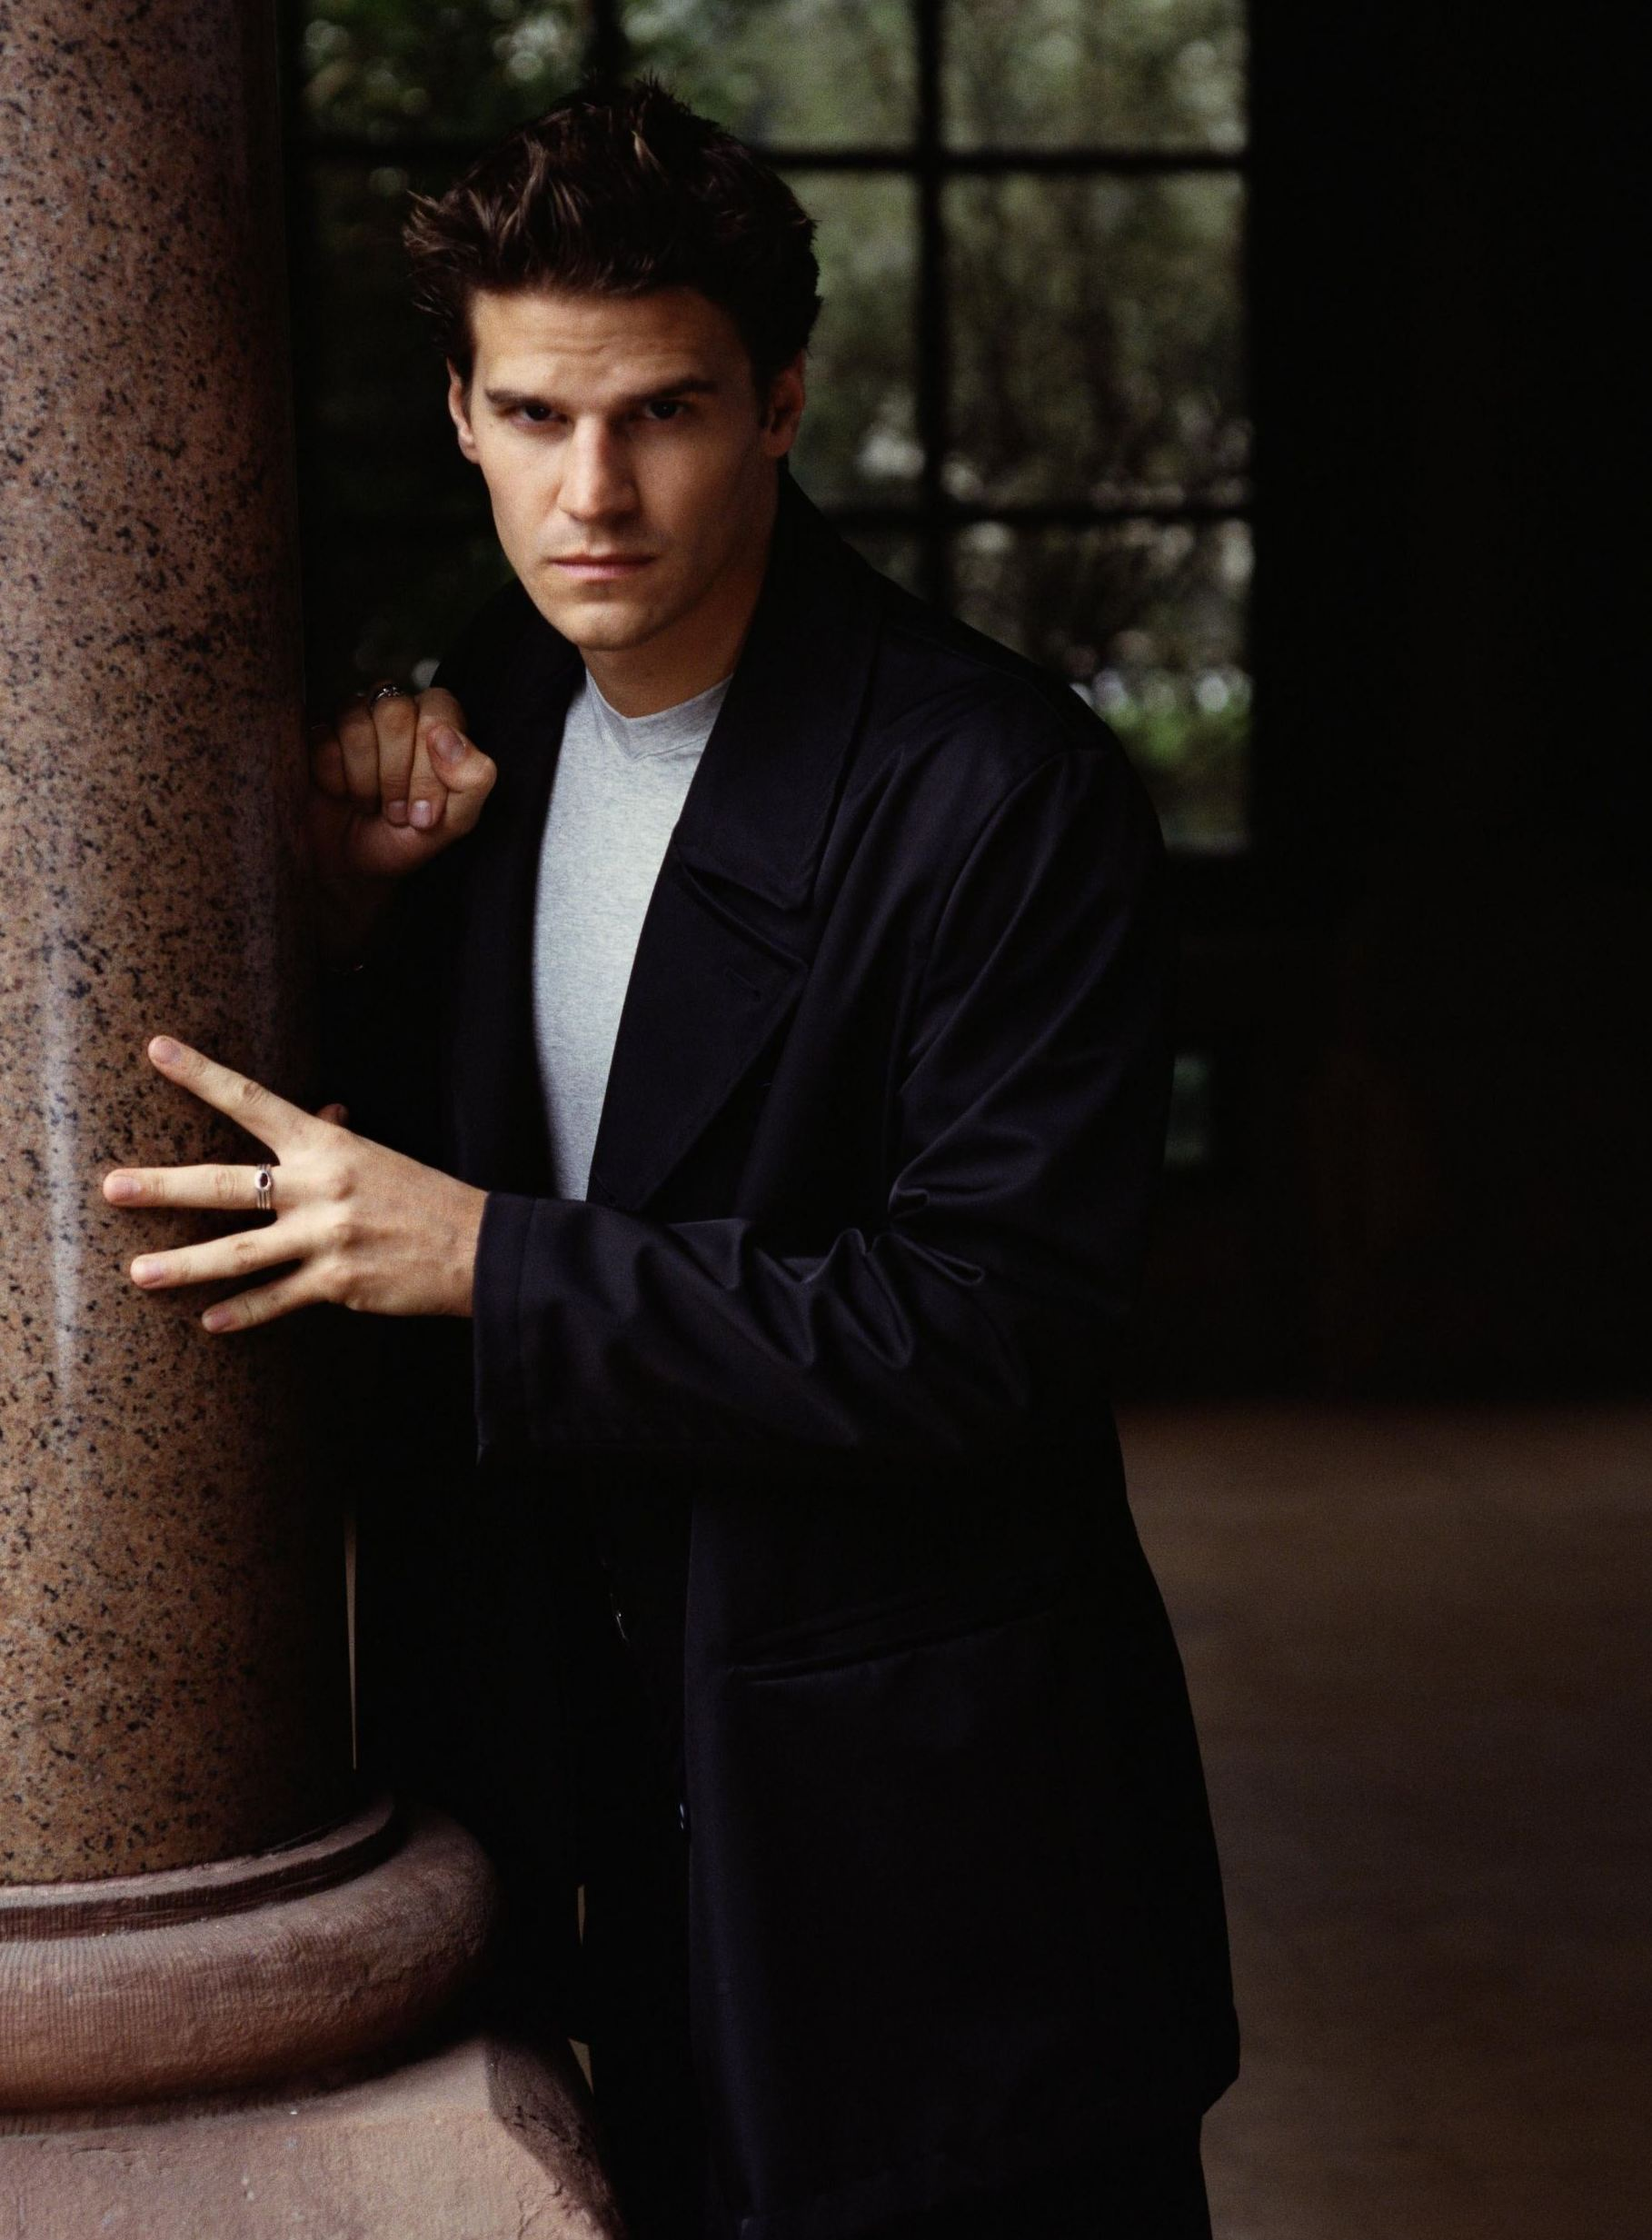 david boreanaz angel season 1 - photo #11